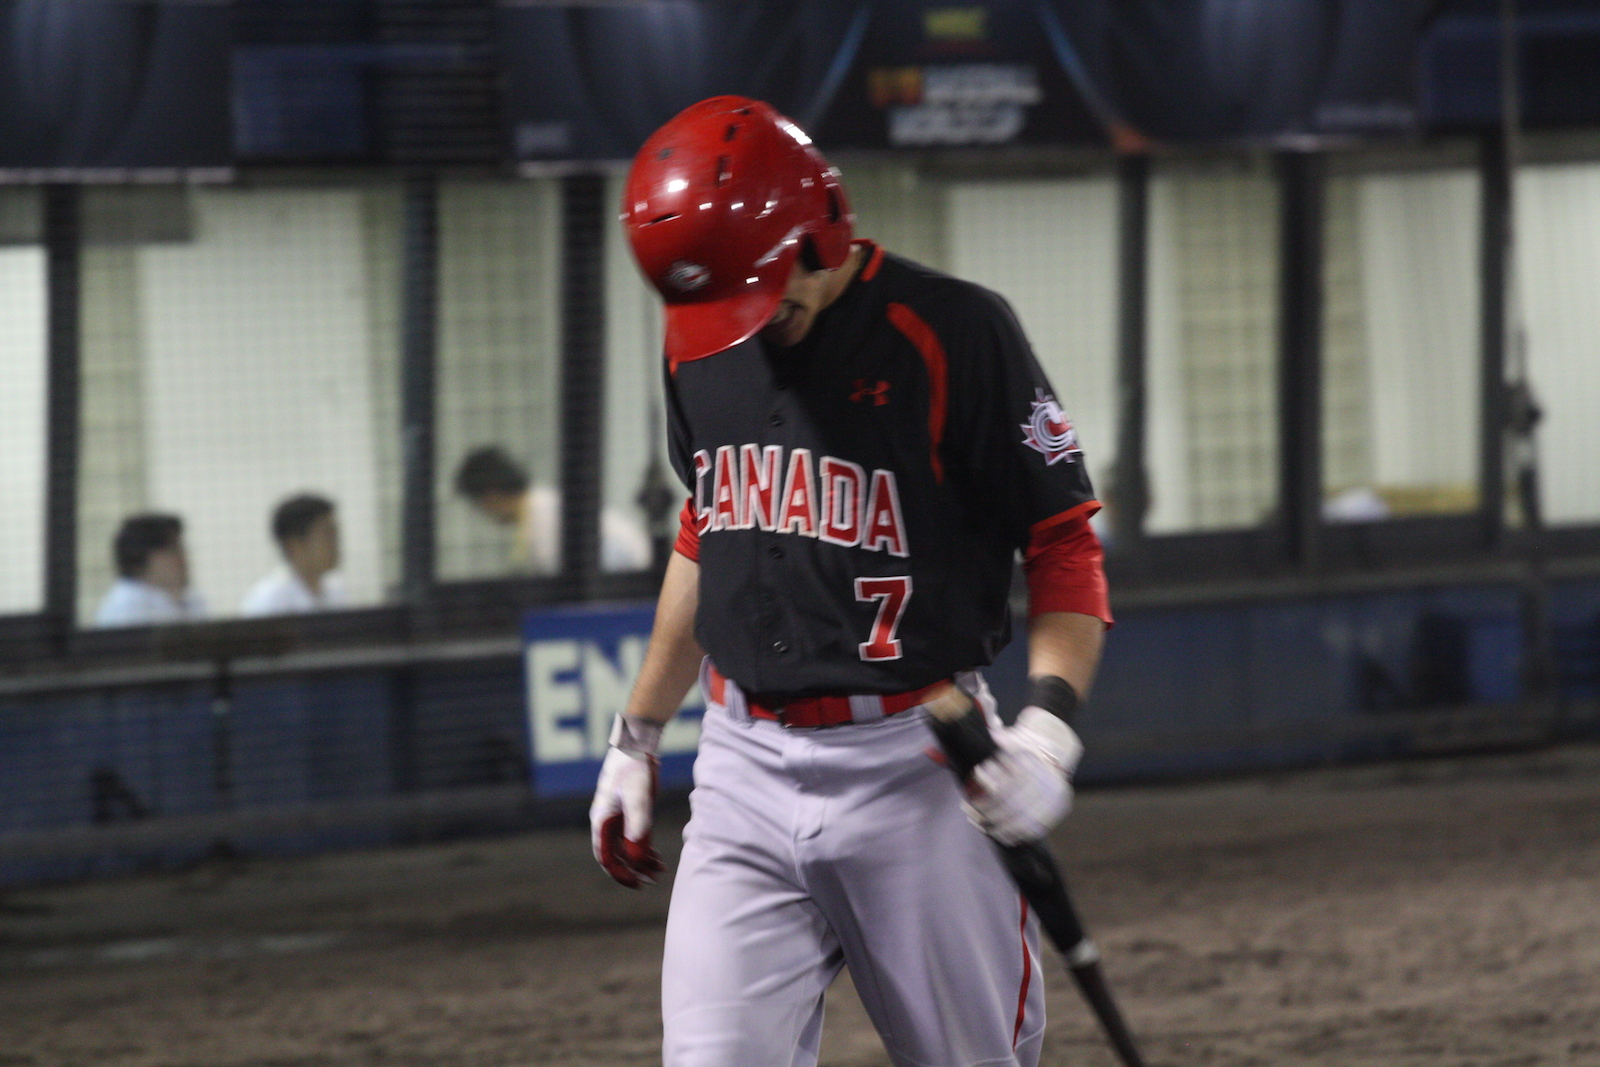 Peter Hutzal (Calgary, Alta.) returns to the dugout after an out, following same line his teammates followed in a 5-2 loss to Japan.